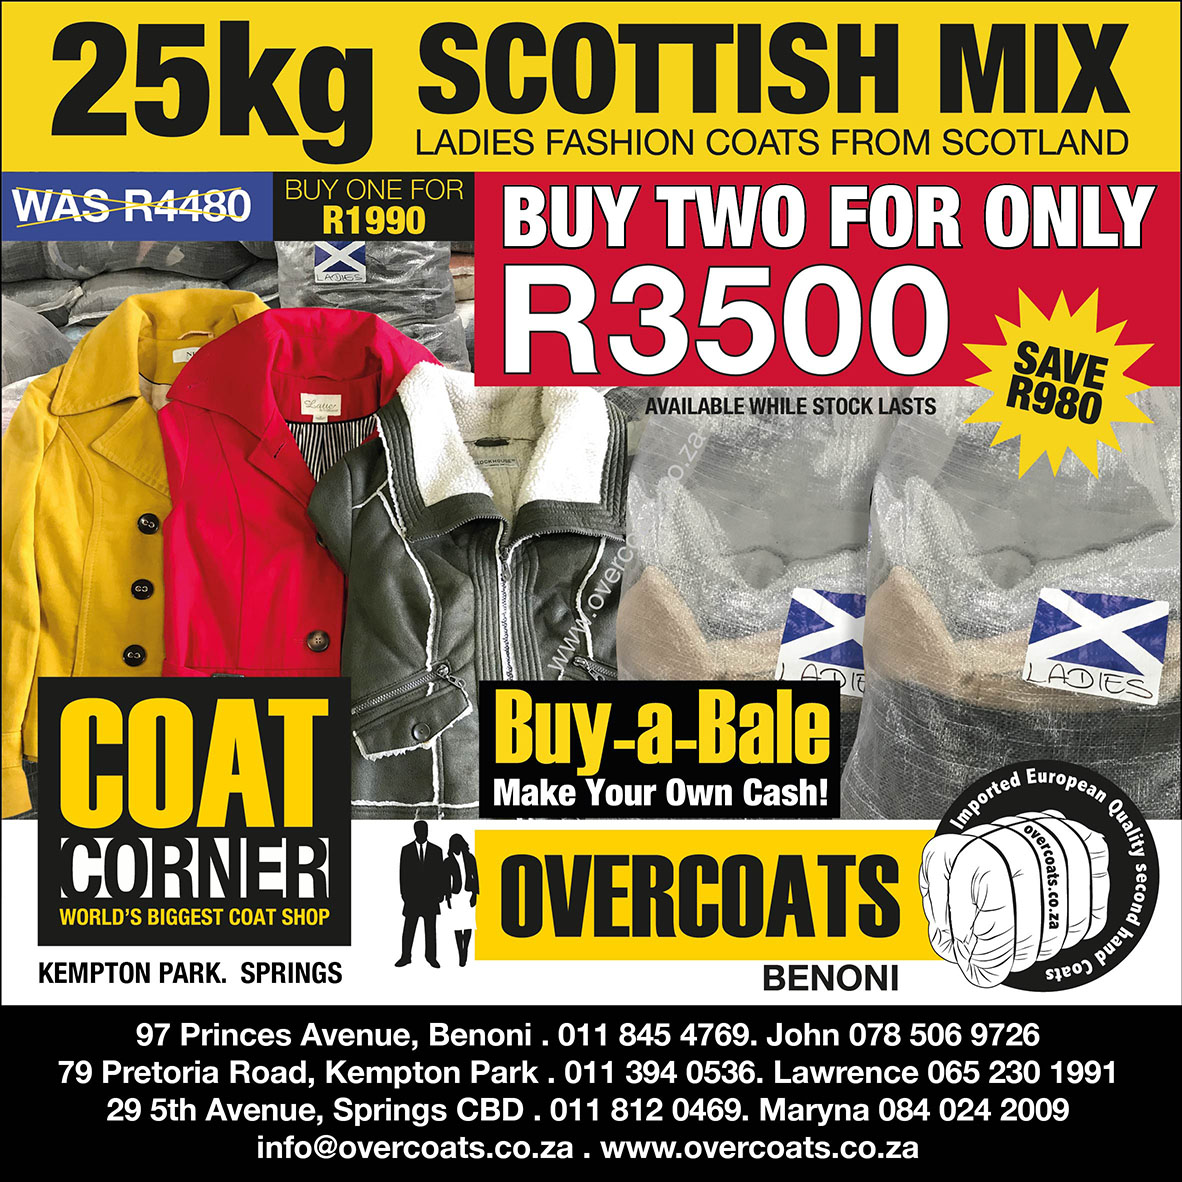 Second hand Overcoats for sale in bales(UK Mix). Business Opportunity!